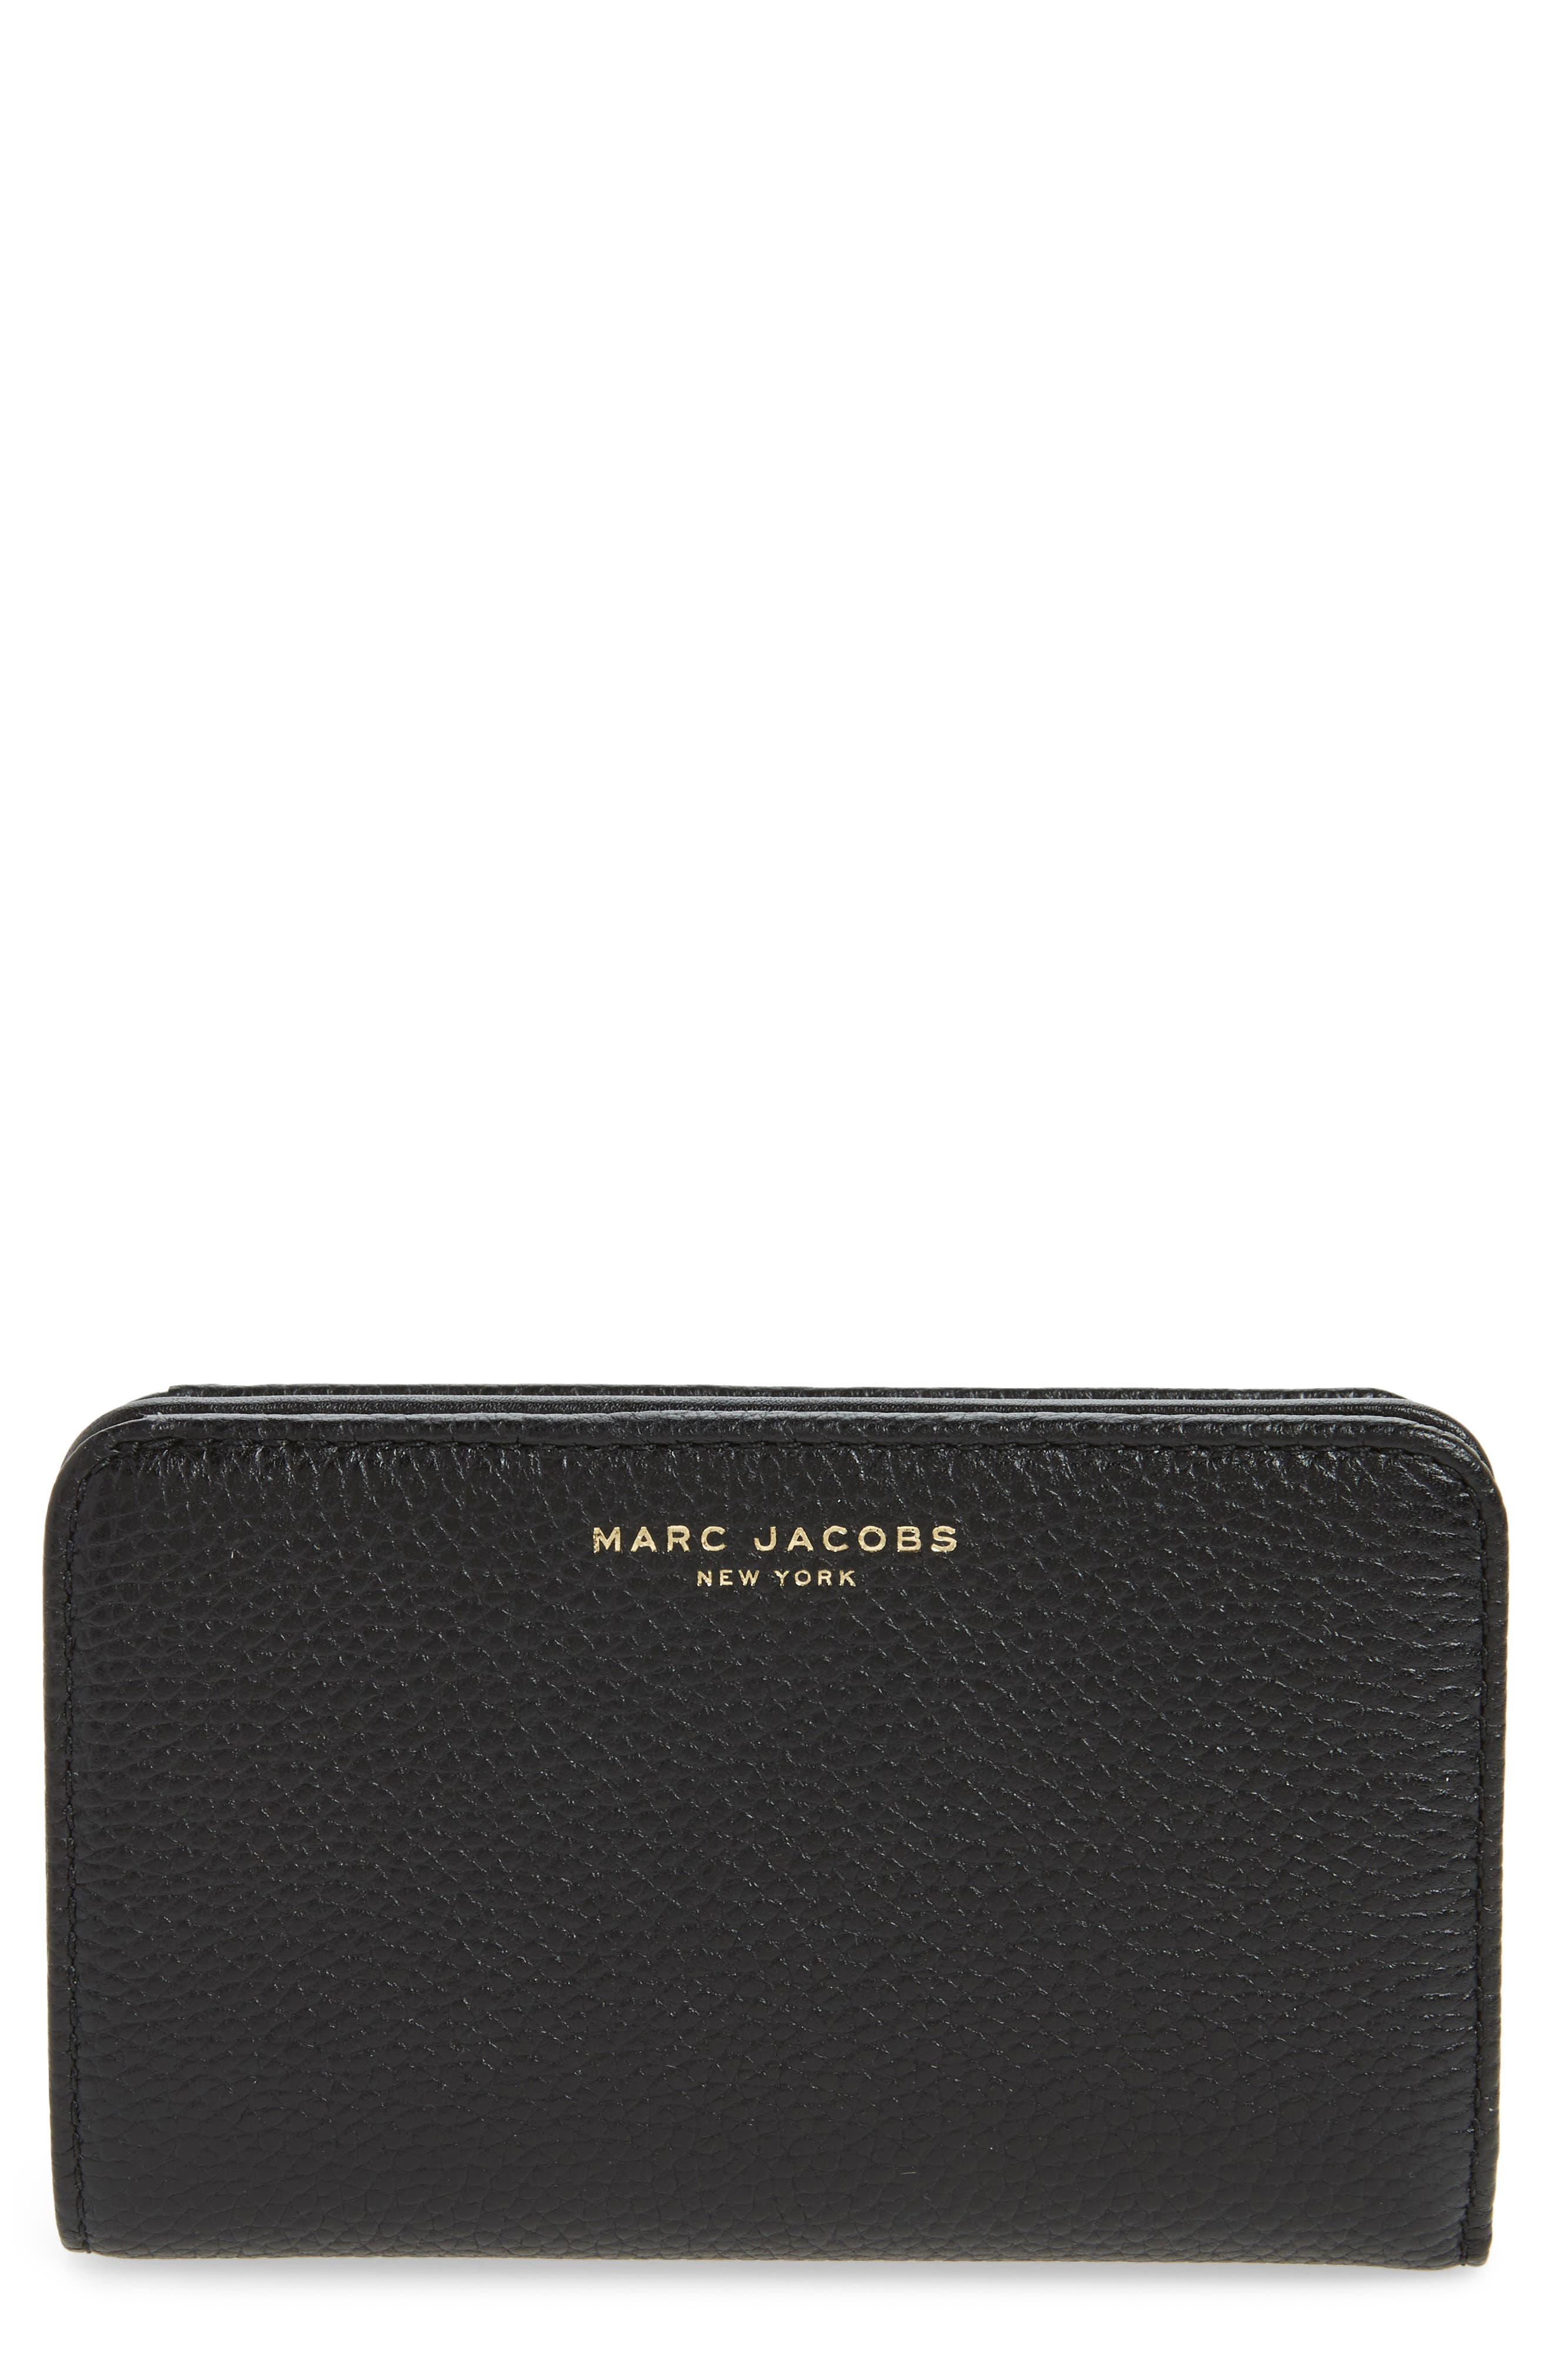 Gotham Compact Leather Wallet,                             Main thumbnail 1, color,                             002